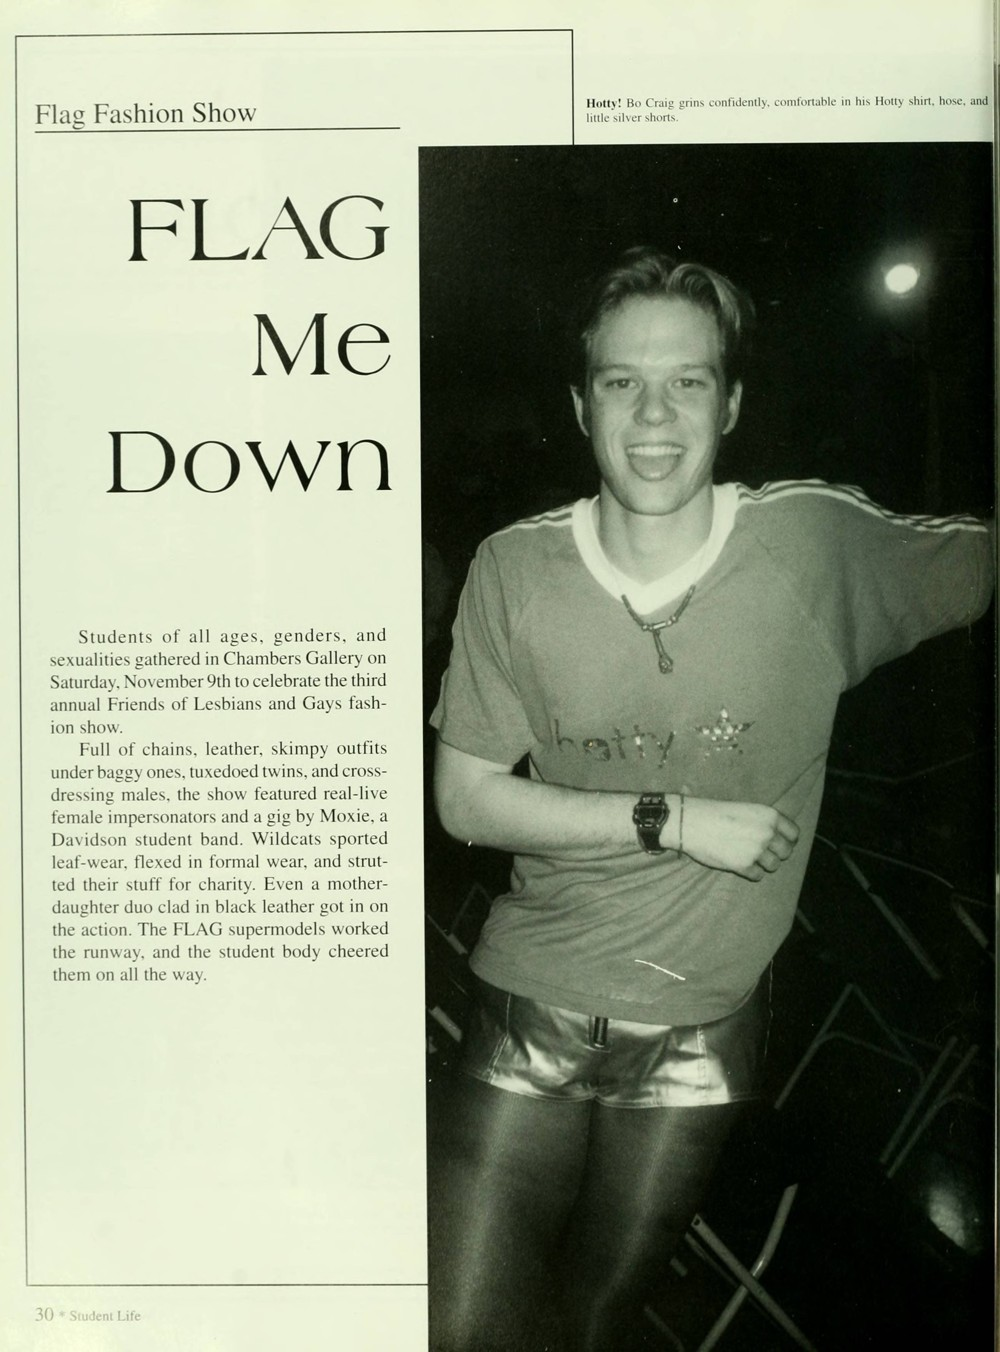 Page from 1997 Quips and Cranks about FLAG. Features organization description and photo of member